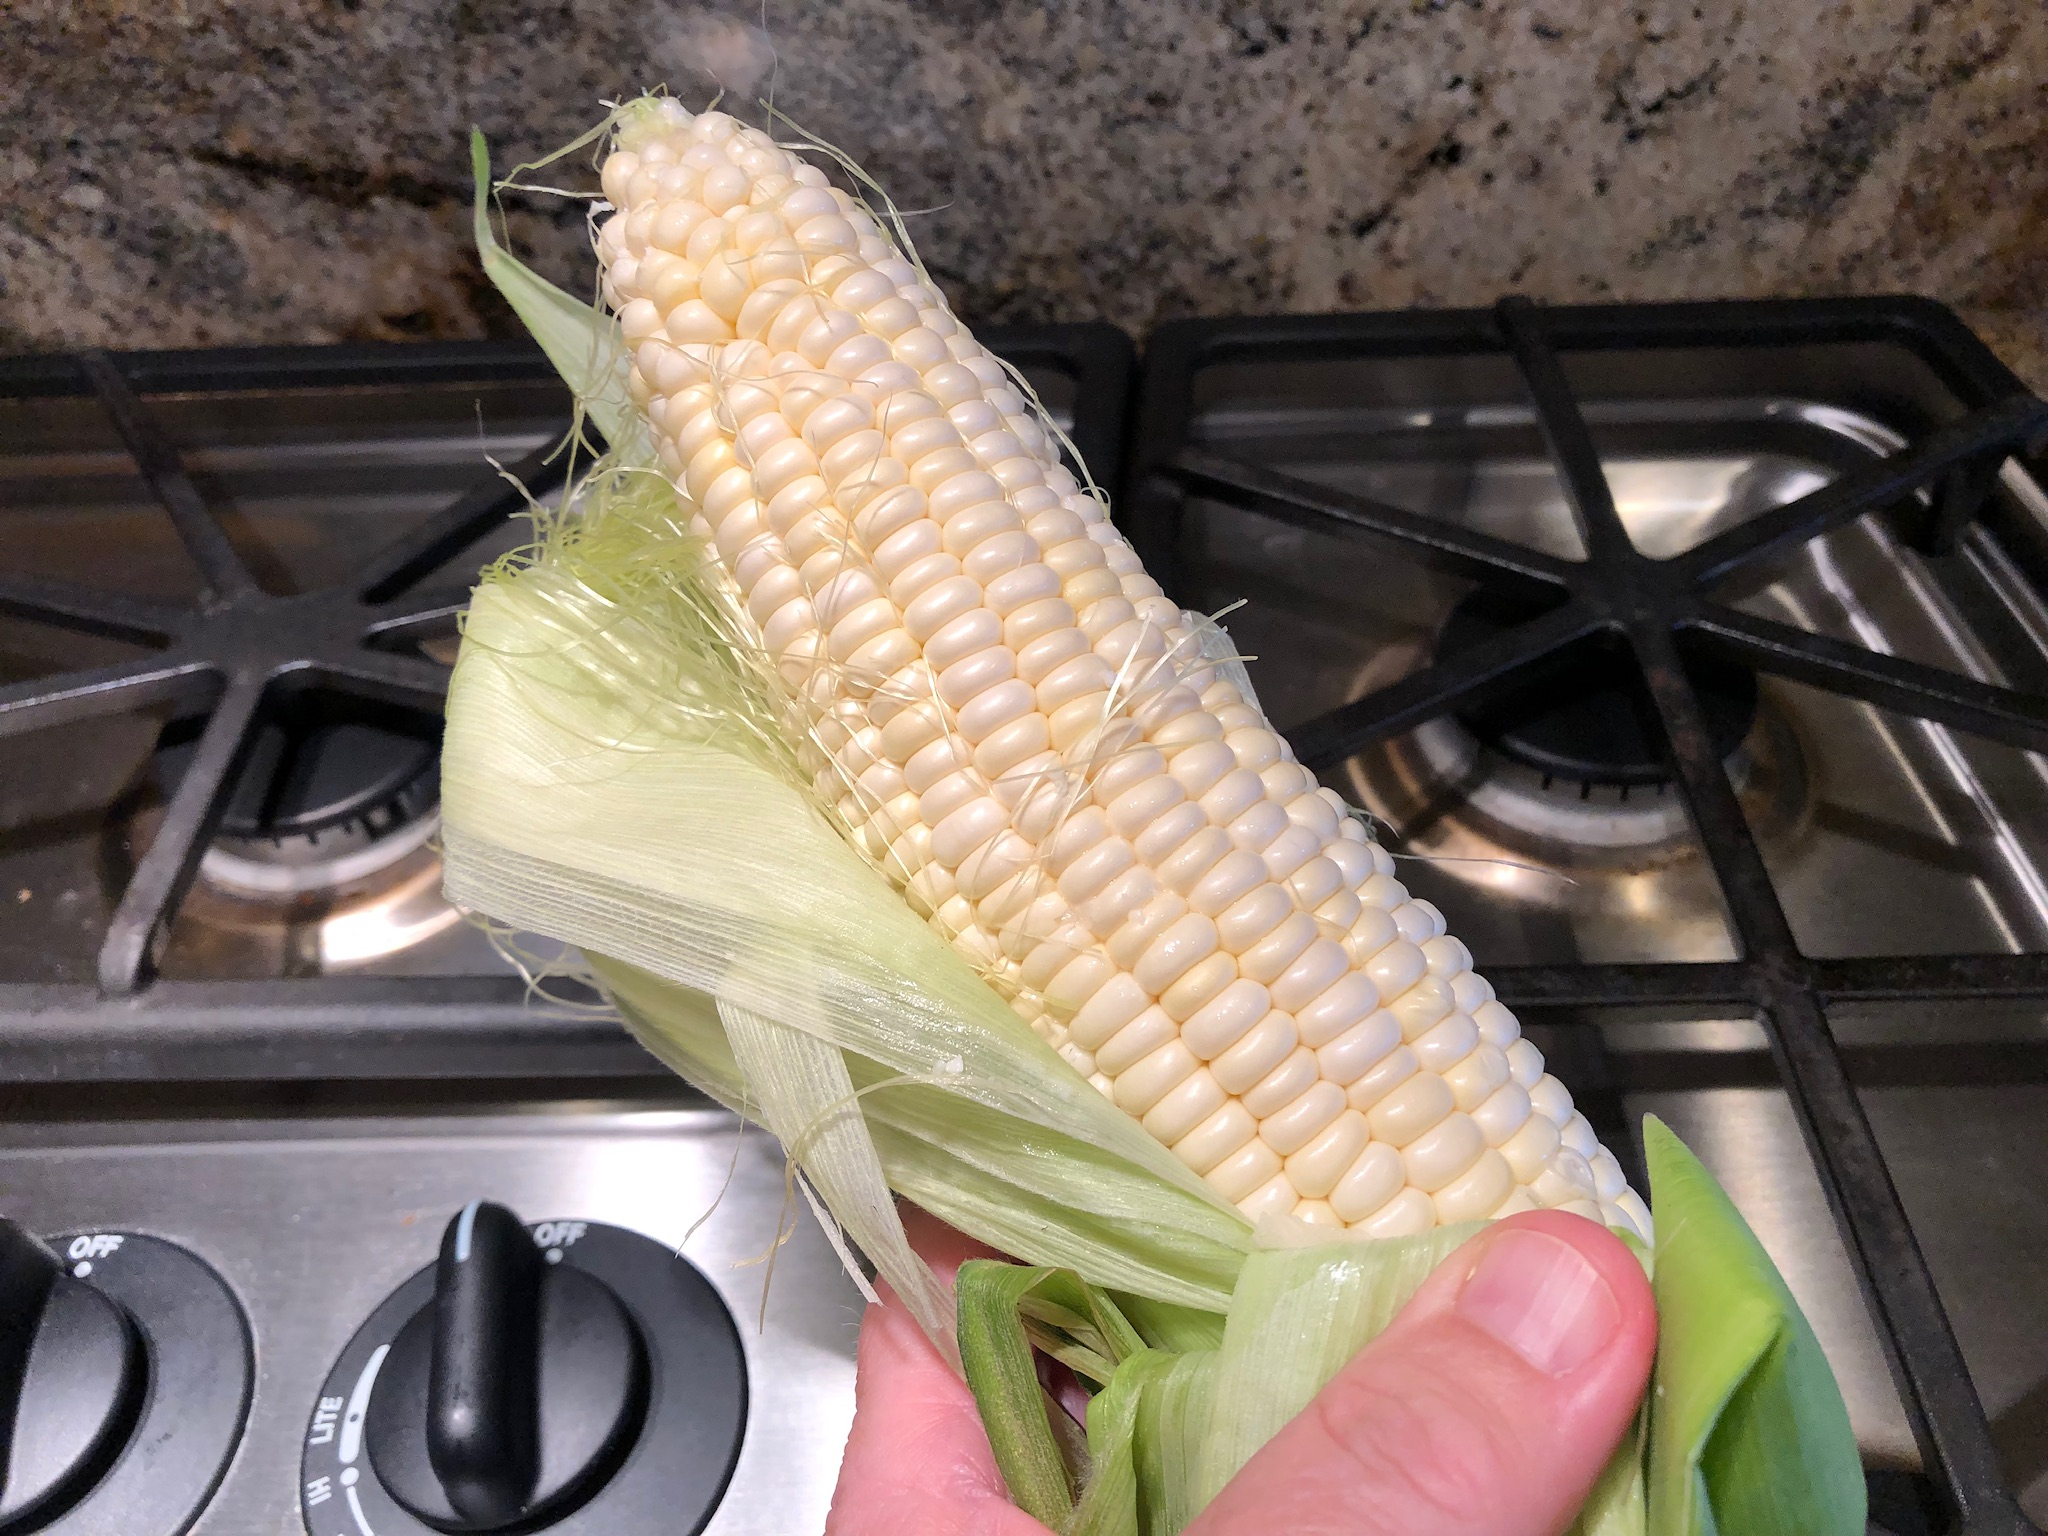 Fresh white corn on the cob in the husk